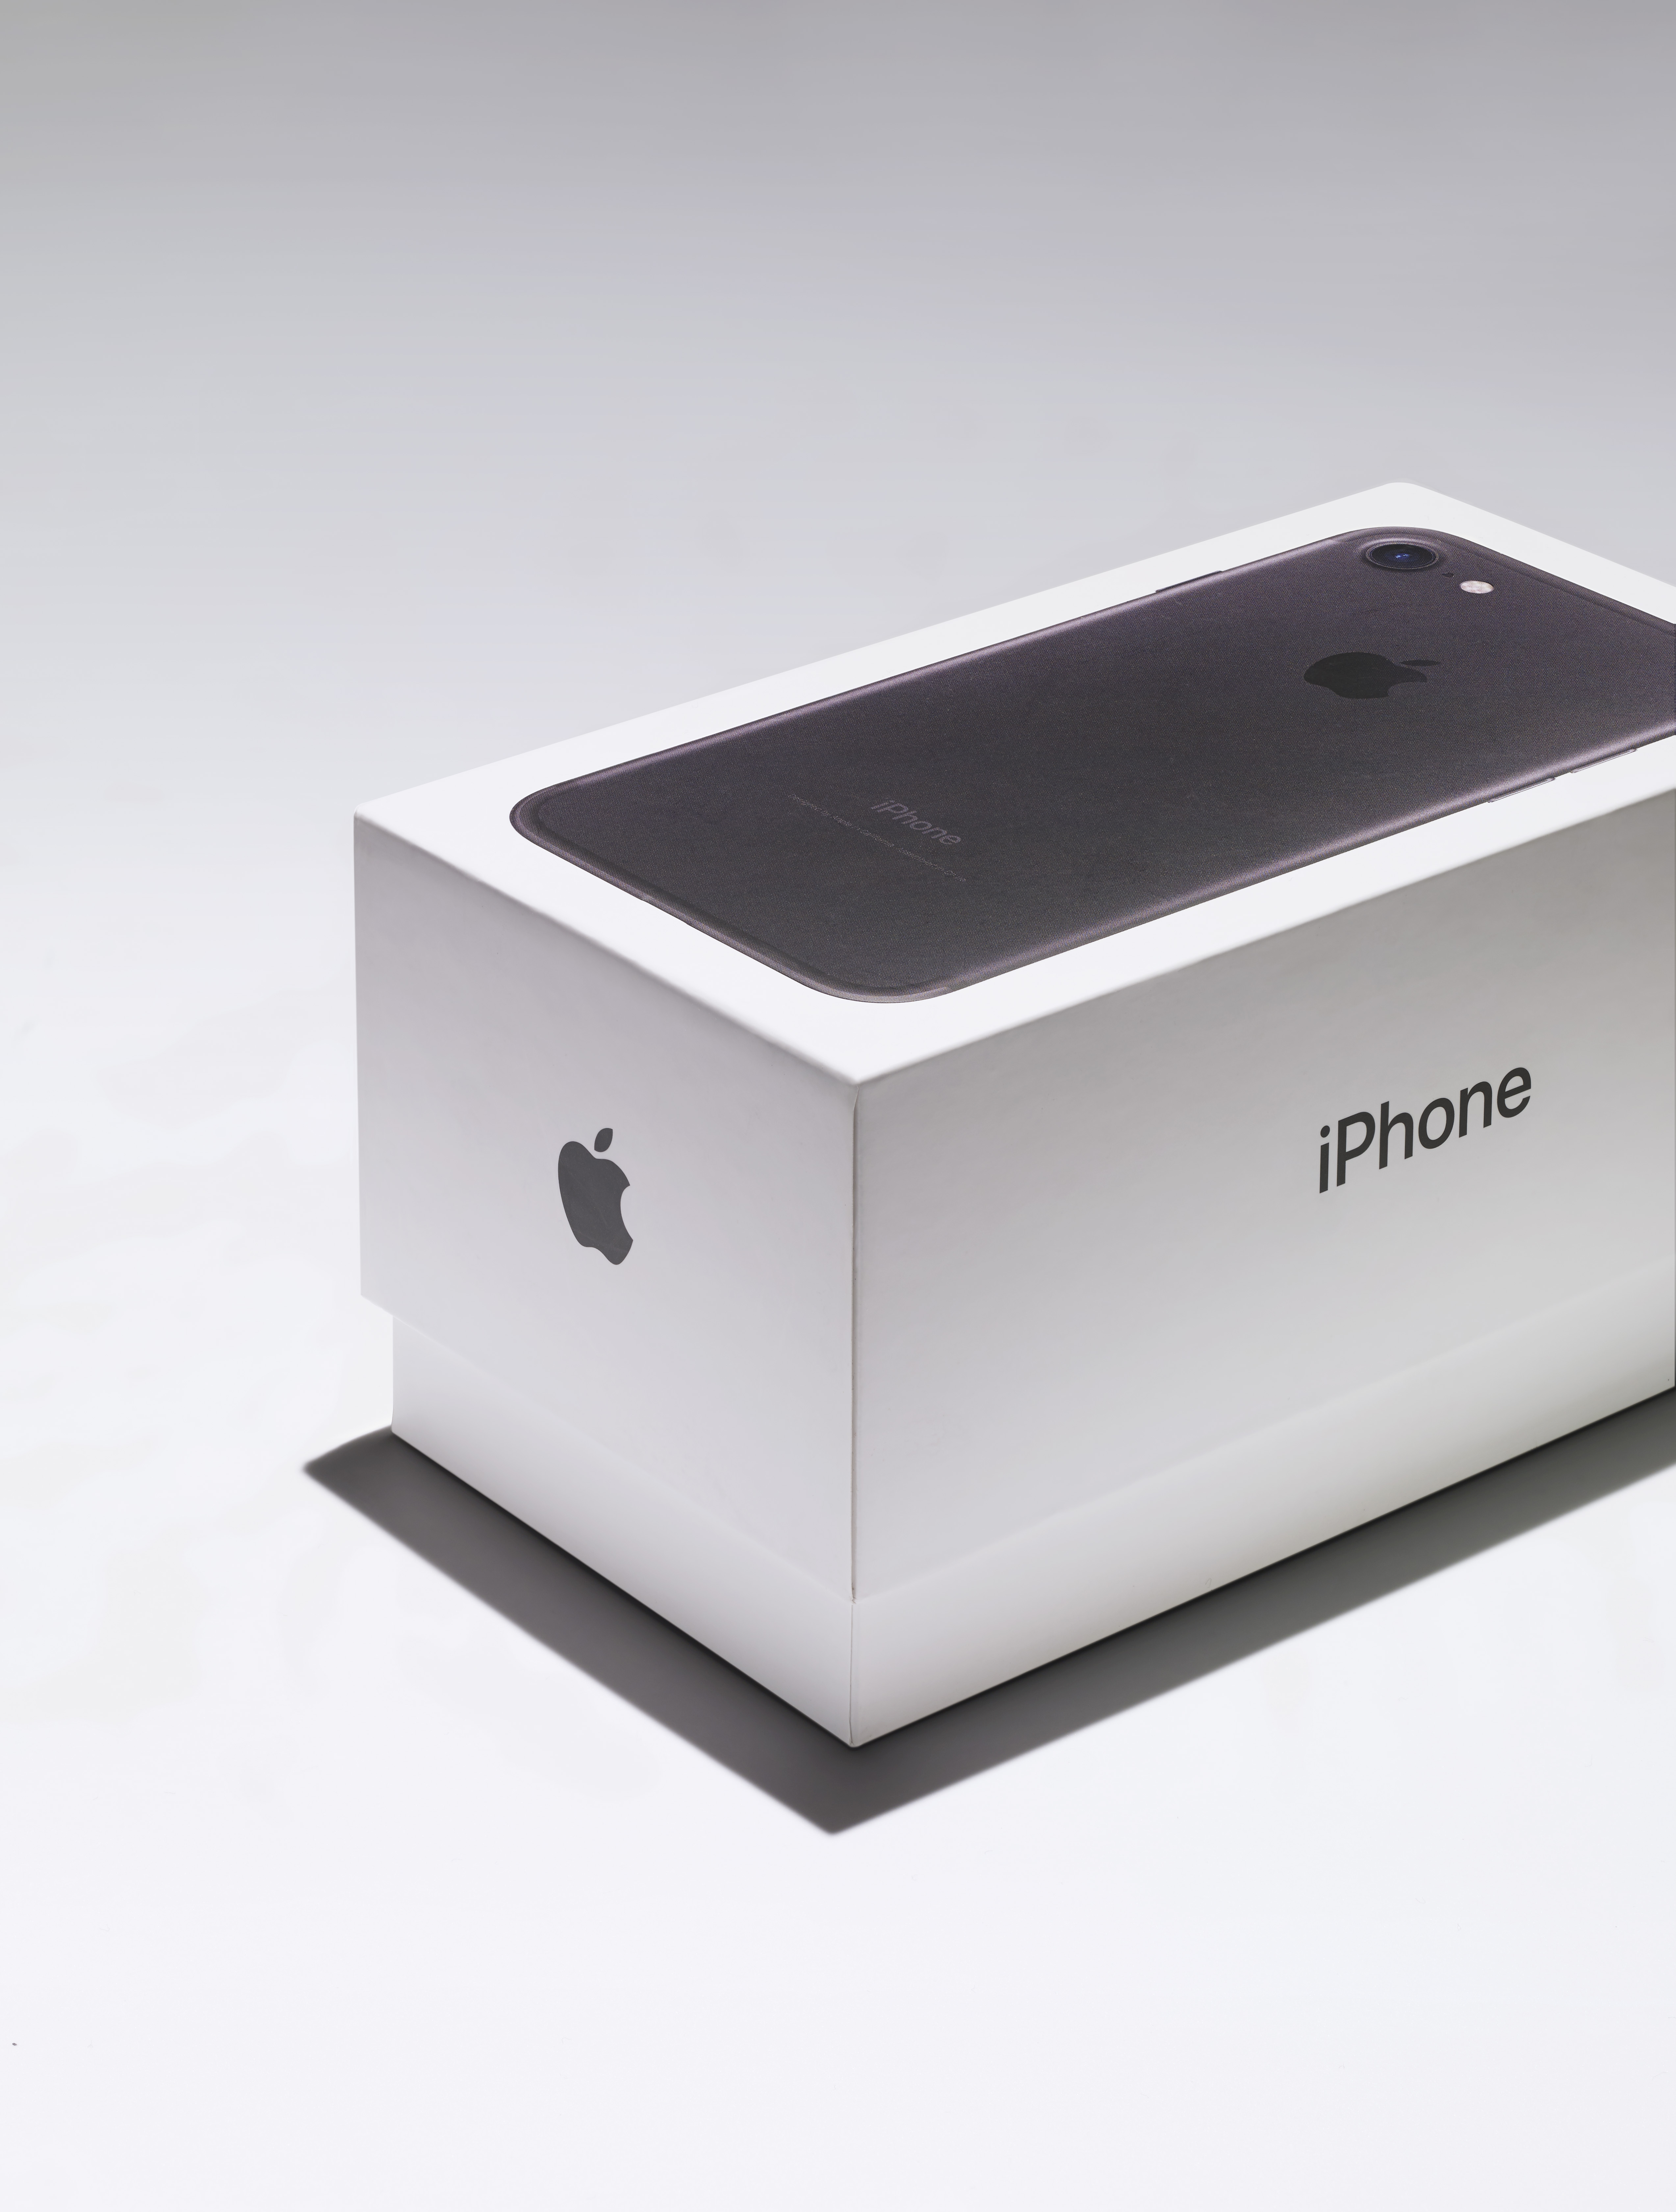 A close-up of a black iPhone box showcasing Apple's smooth, tactile packaging